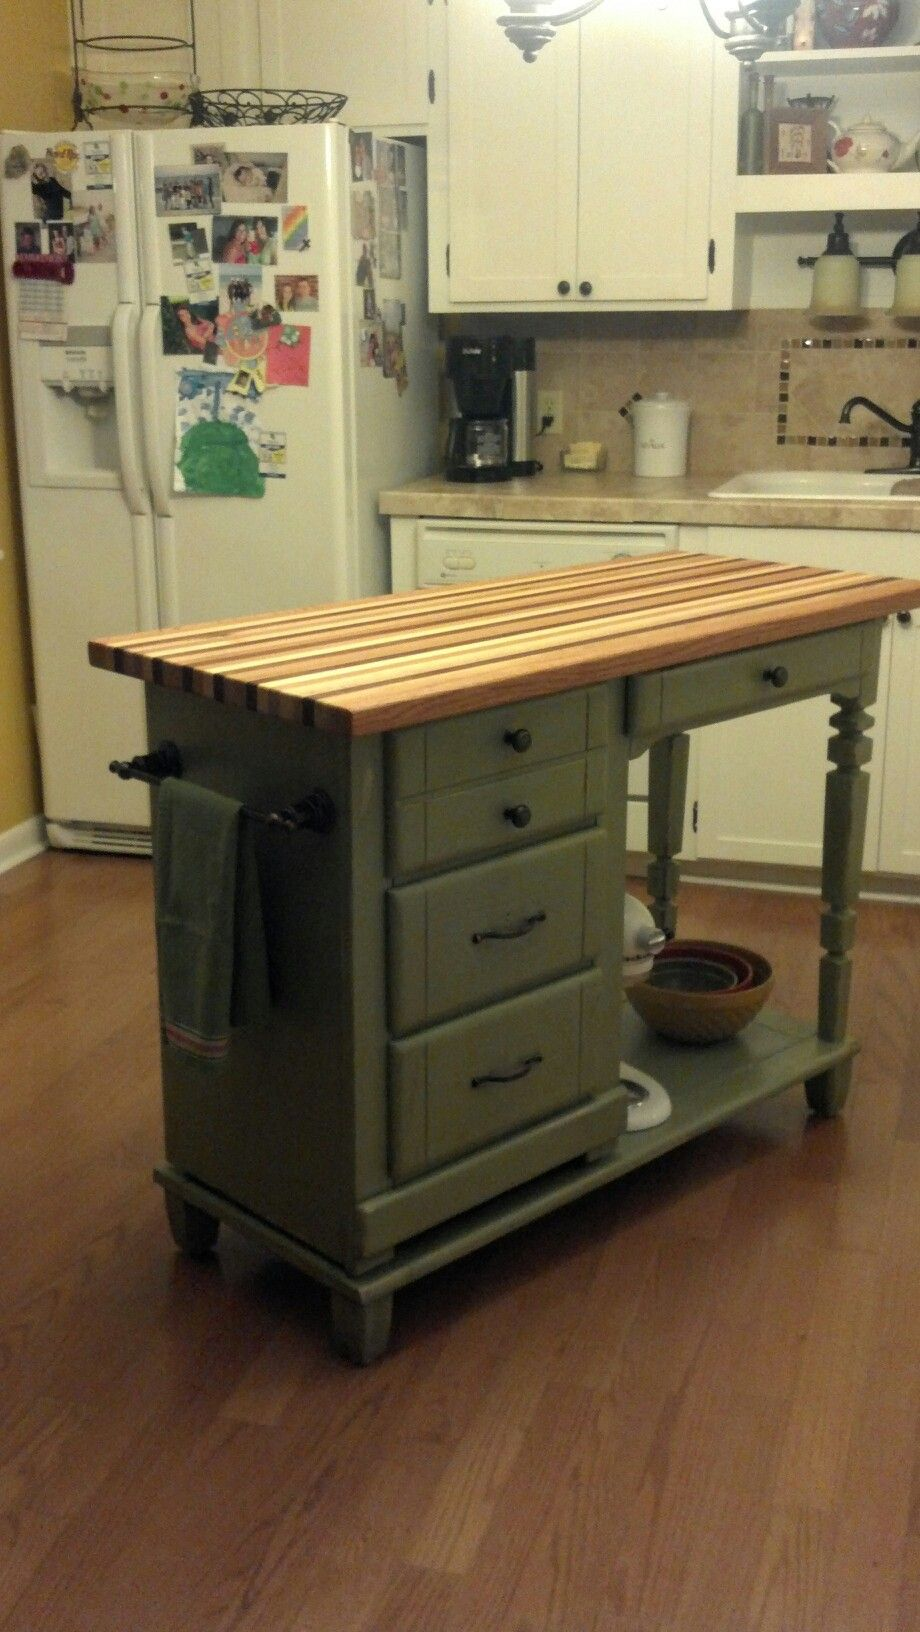 Diy kitchen island repurpose your desk things that make you go